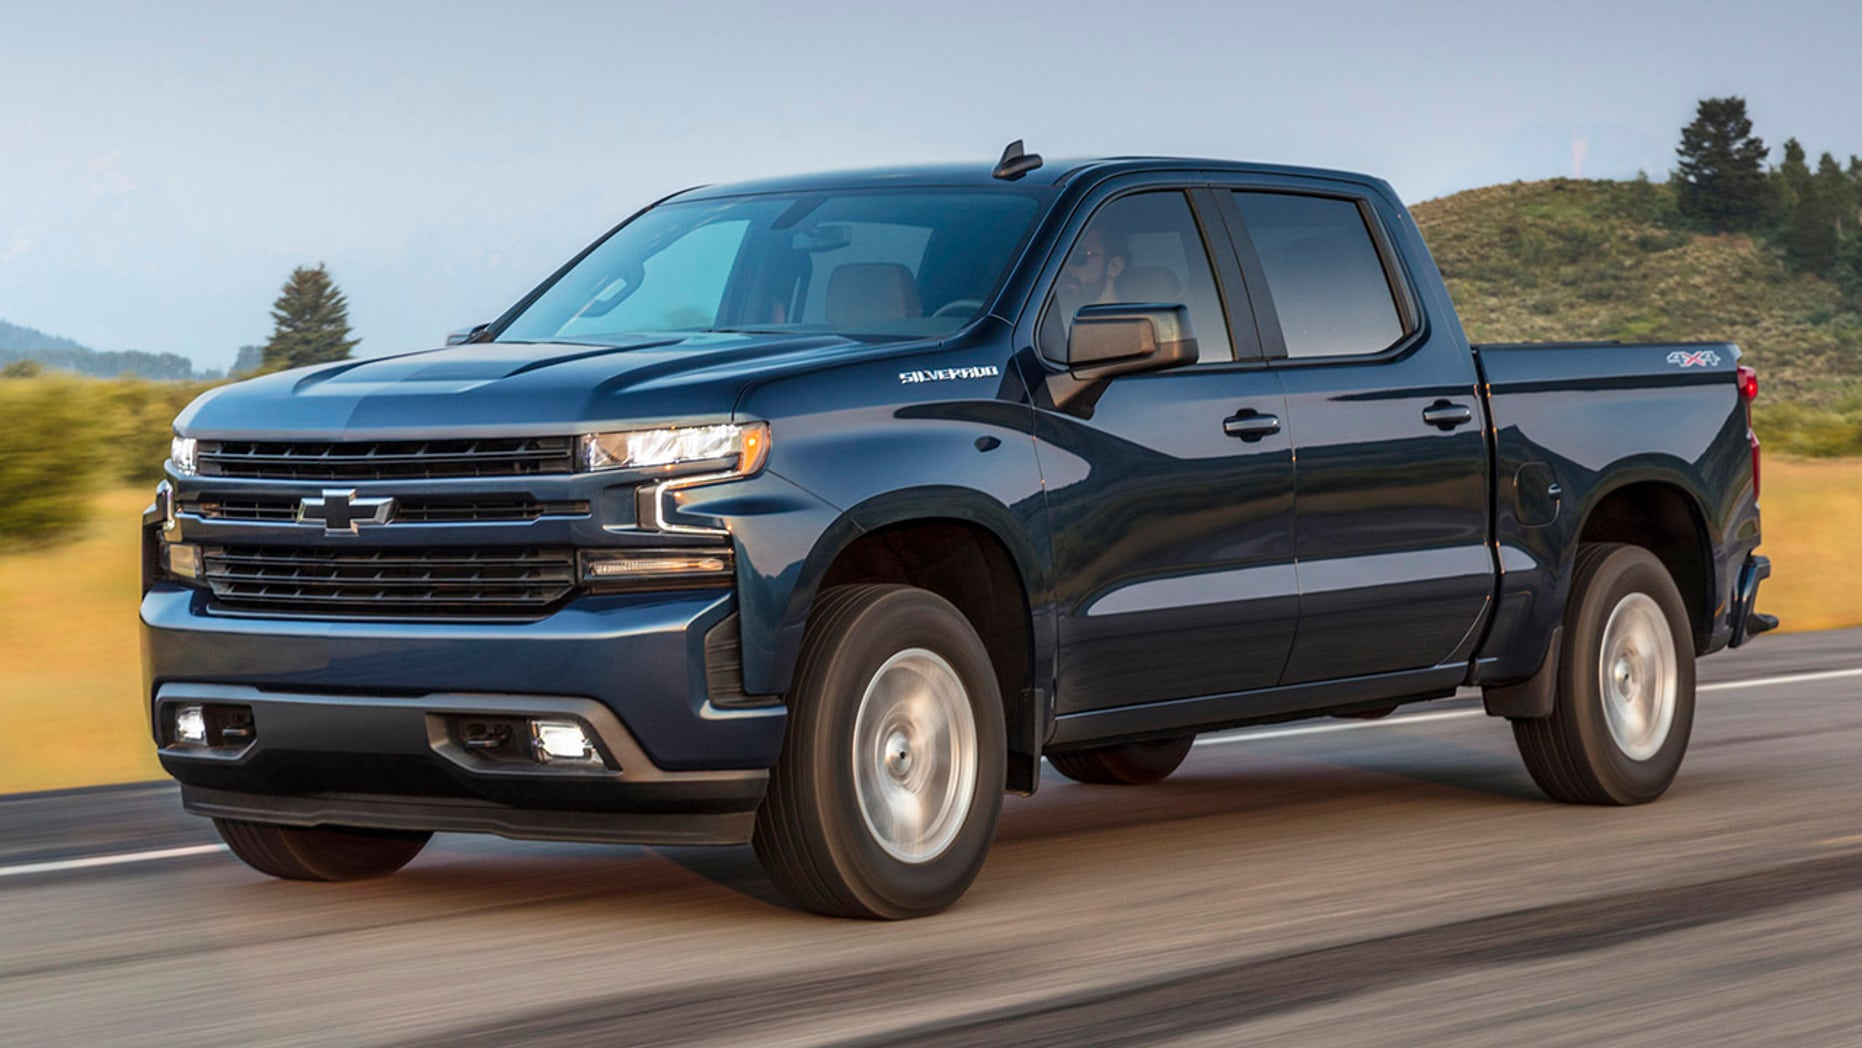 The Chevrolet Silverado RST is one of the trucks that will offer the diesel option.